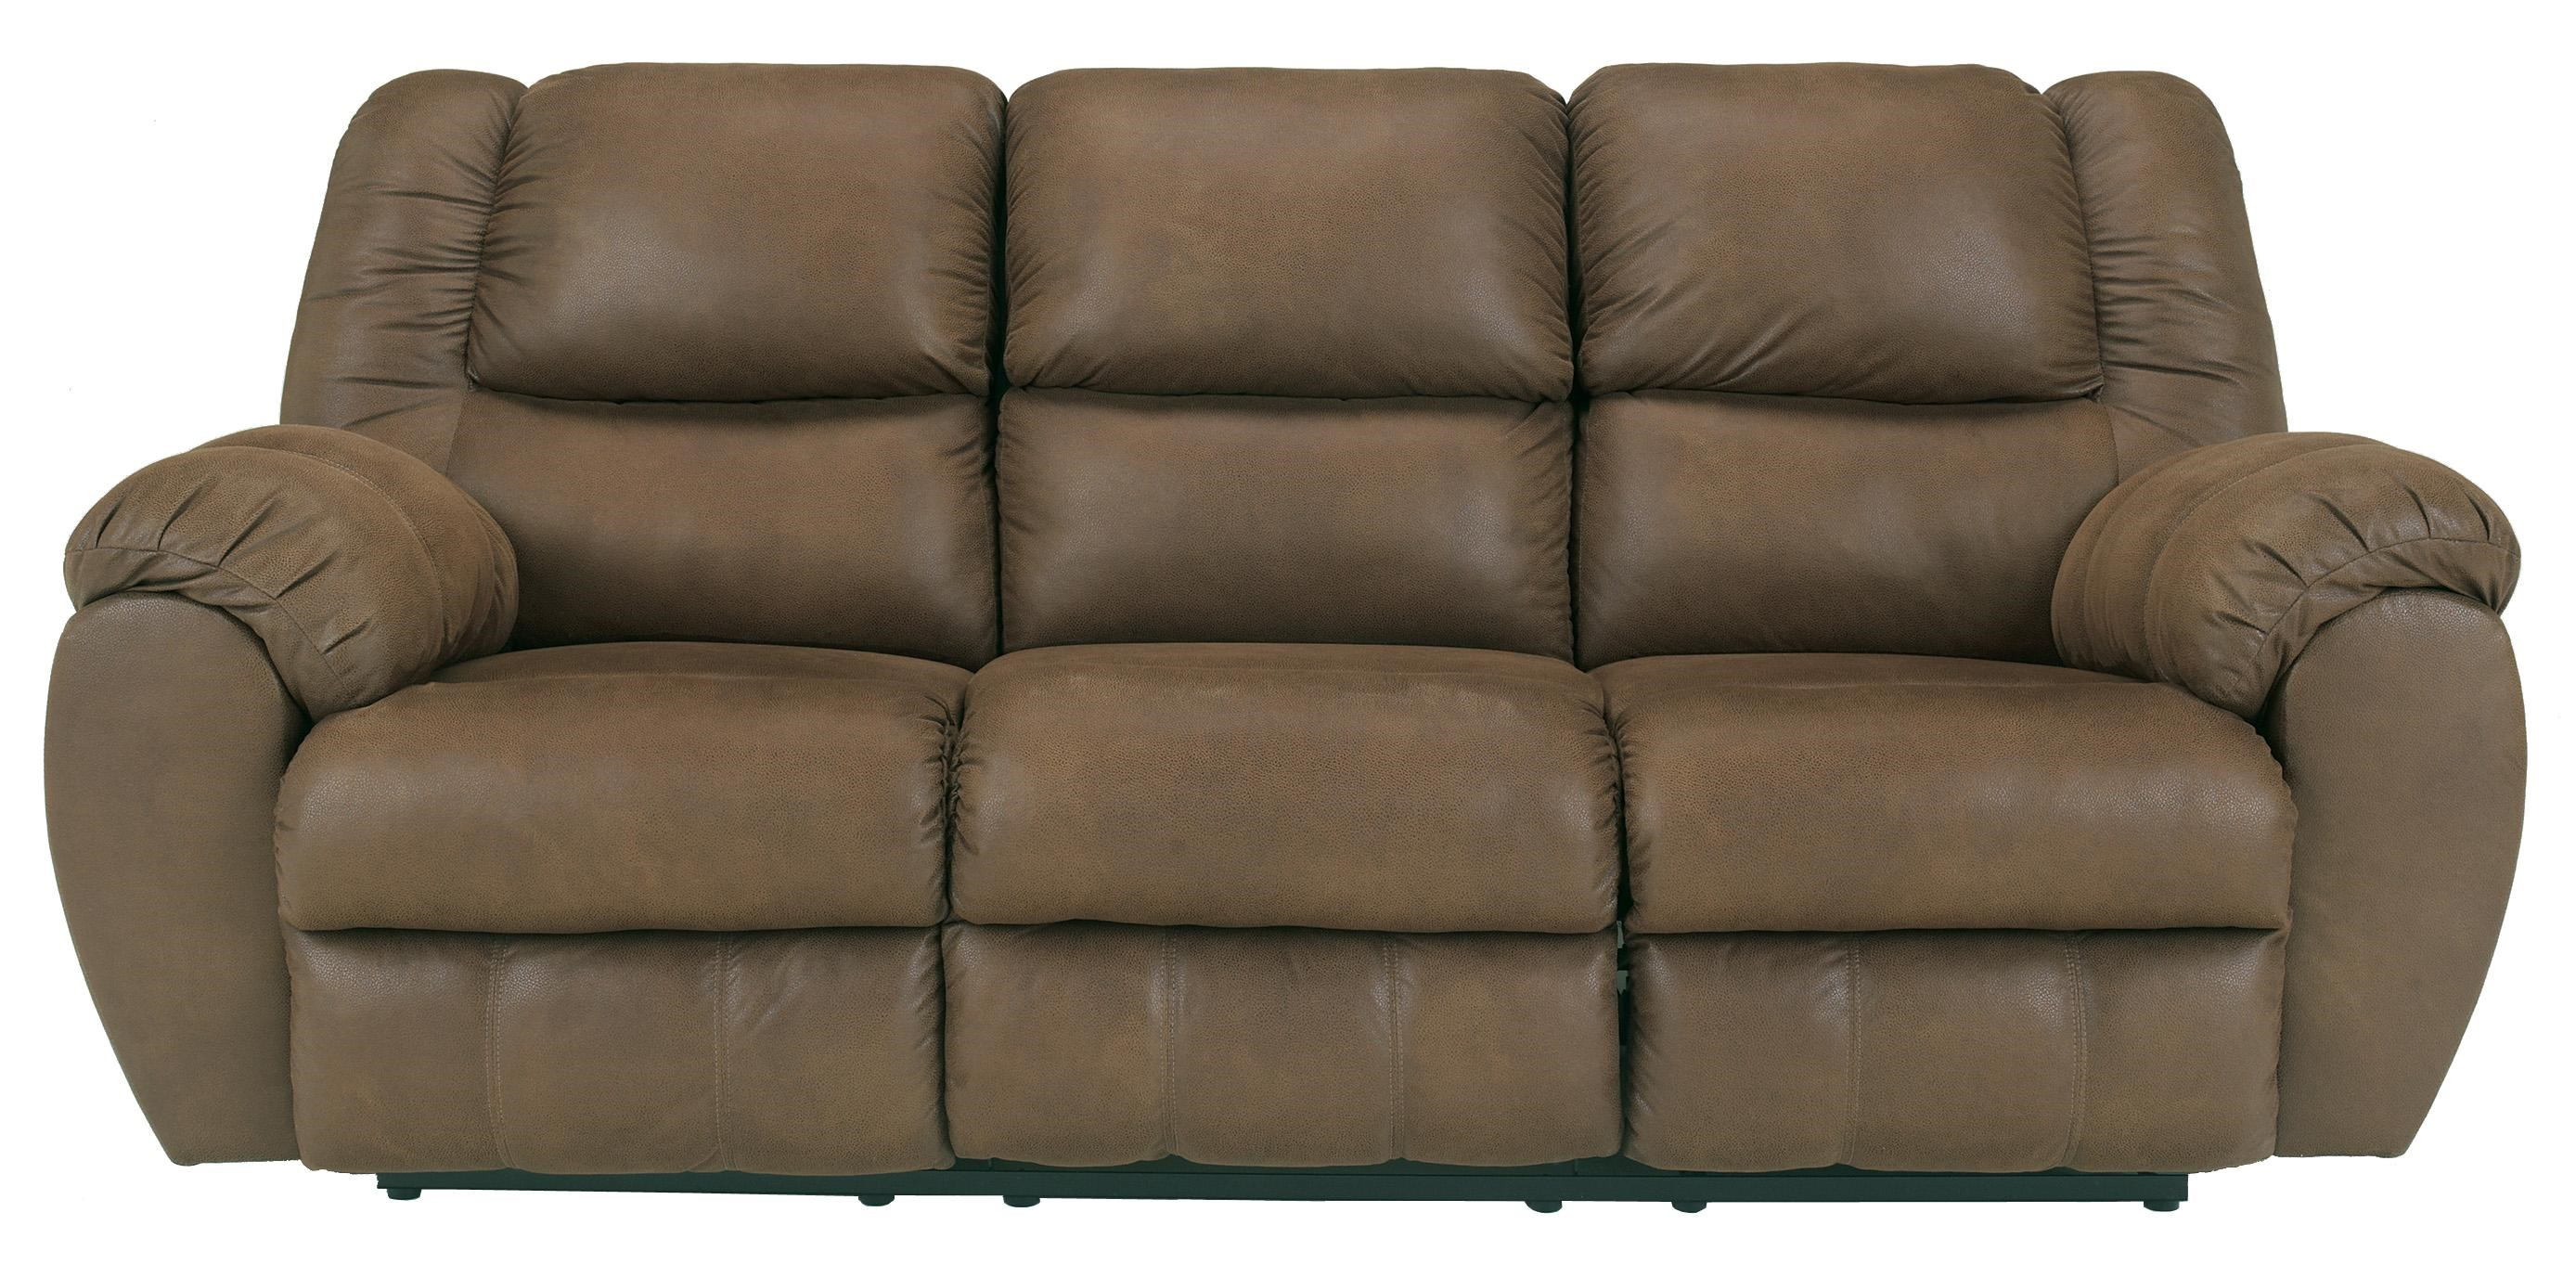 Benchcraft Quarterback - Canyon Reclining Sofa in Faux Brown Leather  sc 1 st  Wayside Furniture & Benchcraft Quarterback - Canyon Reclining Sofa in Faux Brown ... islam-shia.org